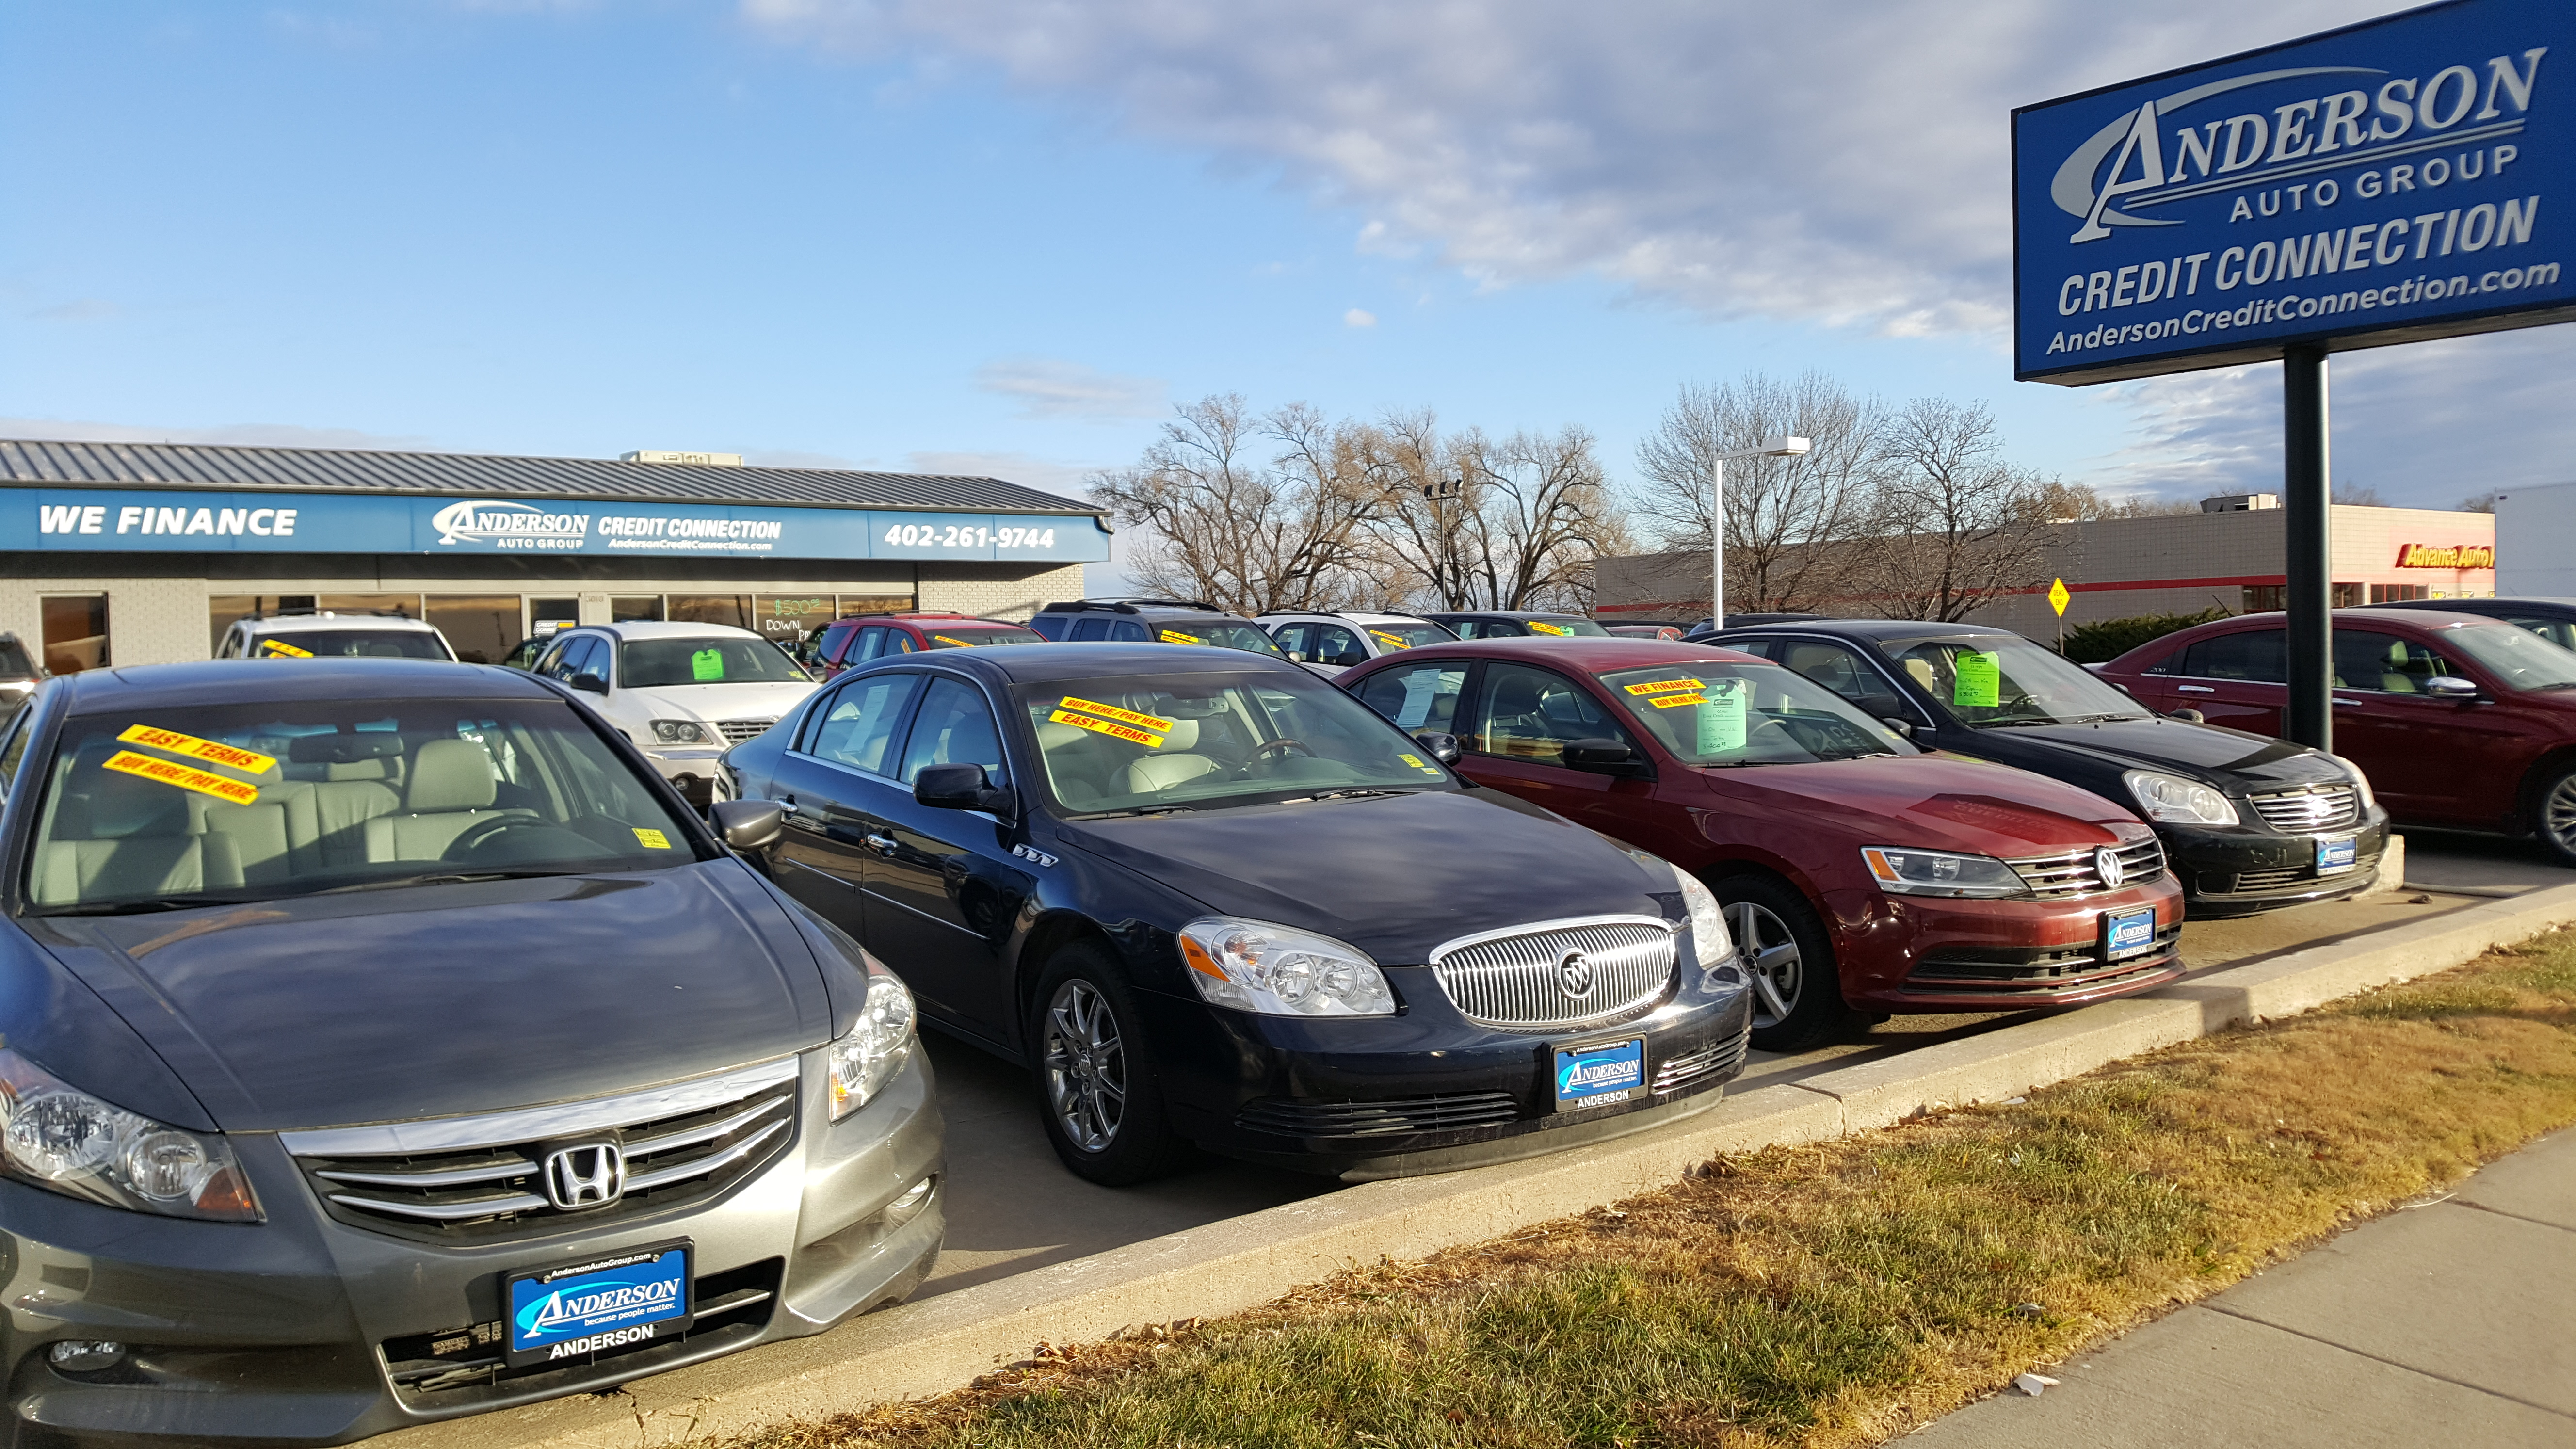 Used Car Dealerships Knoxville Tn >> Unique Used Car Dealerships Near Me Bad Credit | used cars